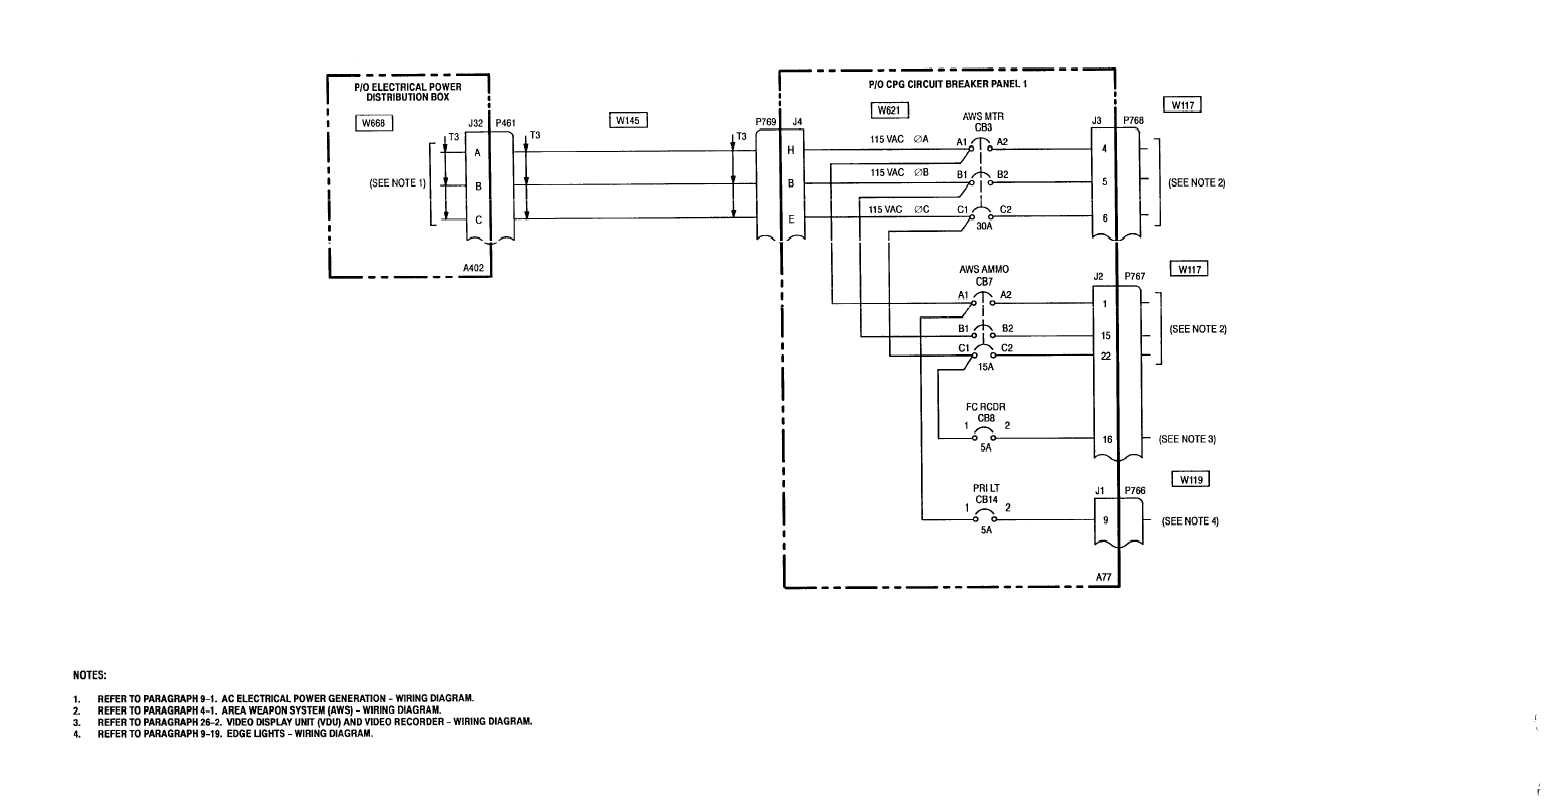 TM -1-1520-238-T-10 9-8 9-8. CIRCUIT PROTECTION (AC ESSENTIAL BUS 2 – CPG  STATION) – WIRING DIAGRAM SHEET 1 OF 1 M50-207A 9–1 8